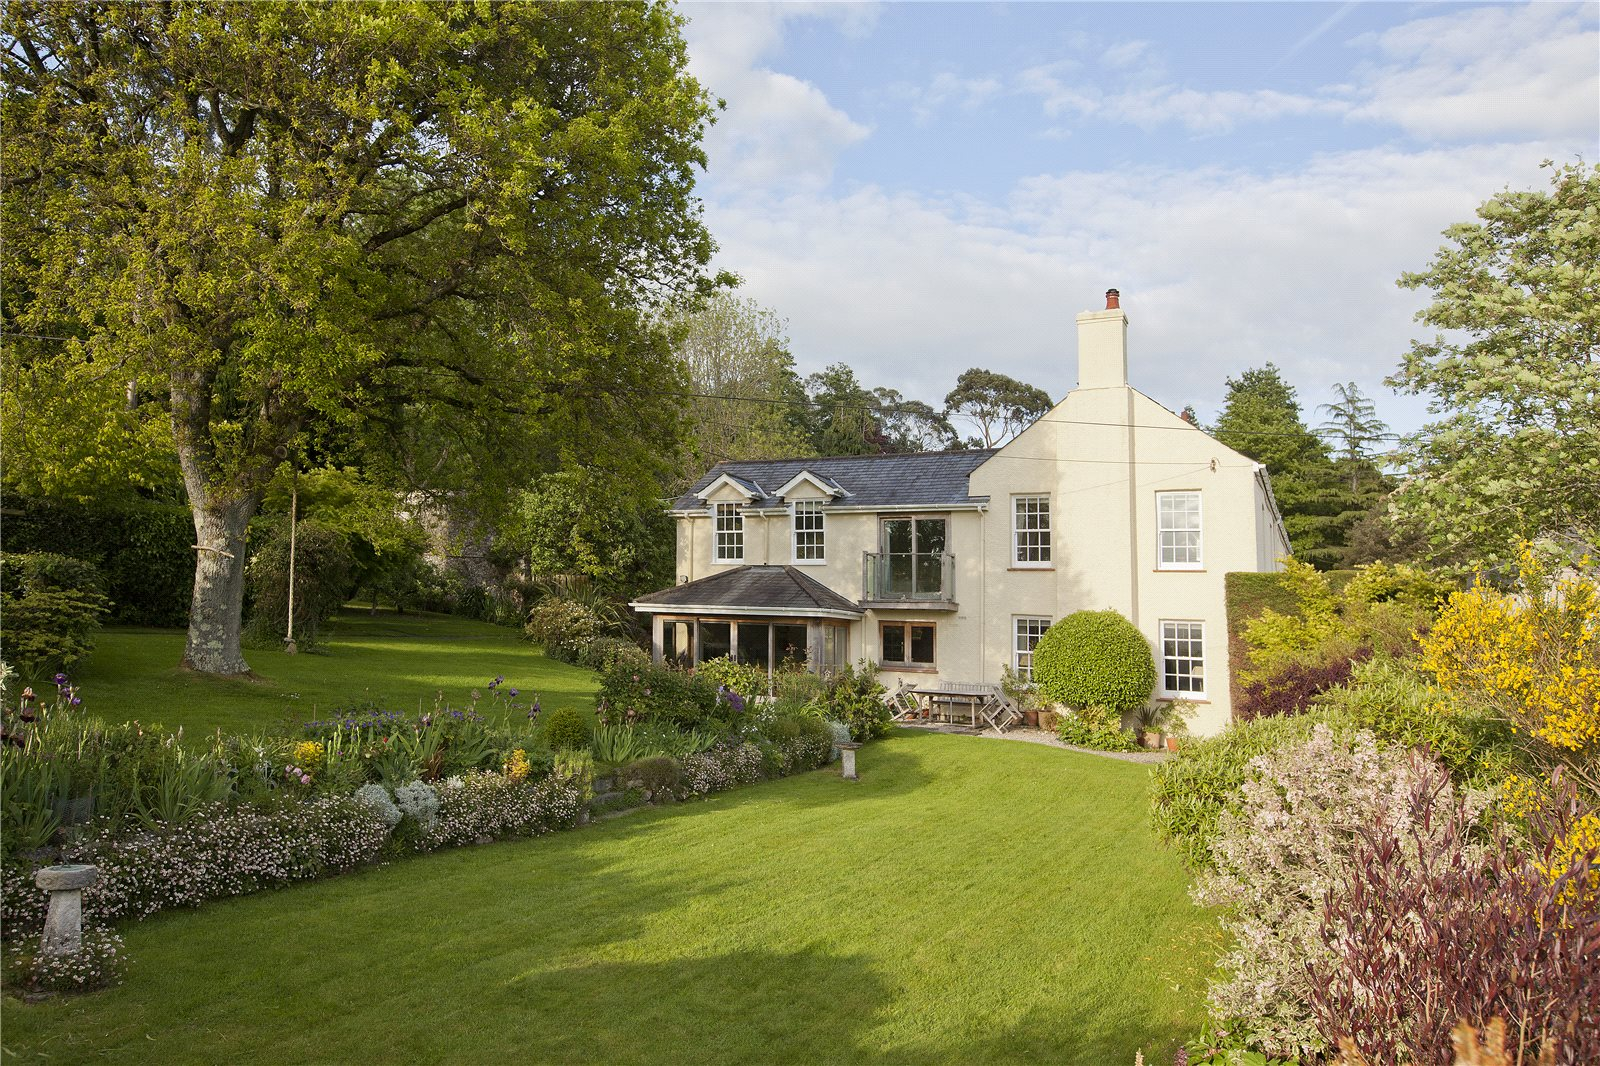 Single Family Home for Sale at Bovey Tracey, Newton Abbot, Devon, TQ13 Newton Abbot, England